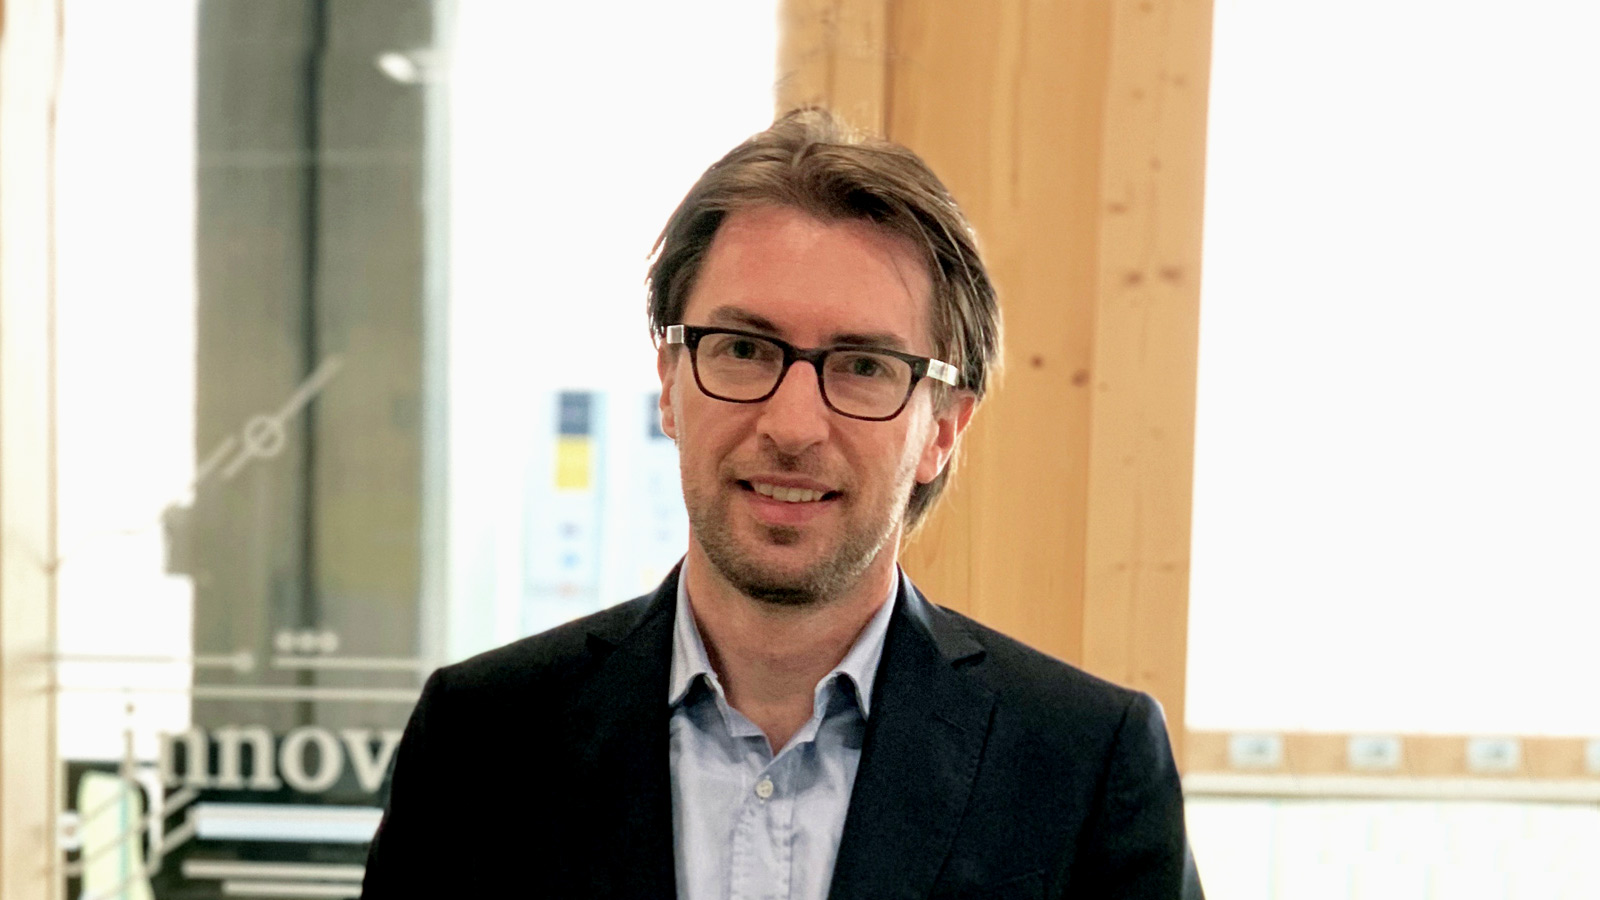 Co-founder of Flashboys.NL Mark Noorlander: lose touch with your customers, lose your business